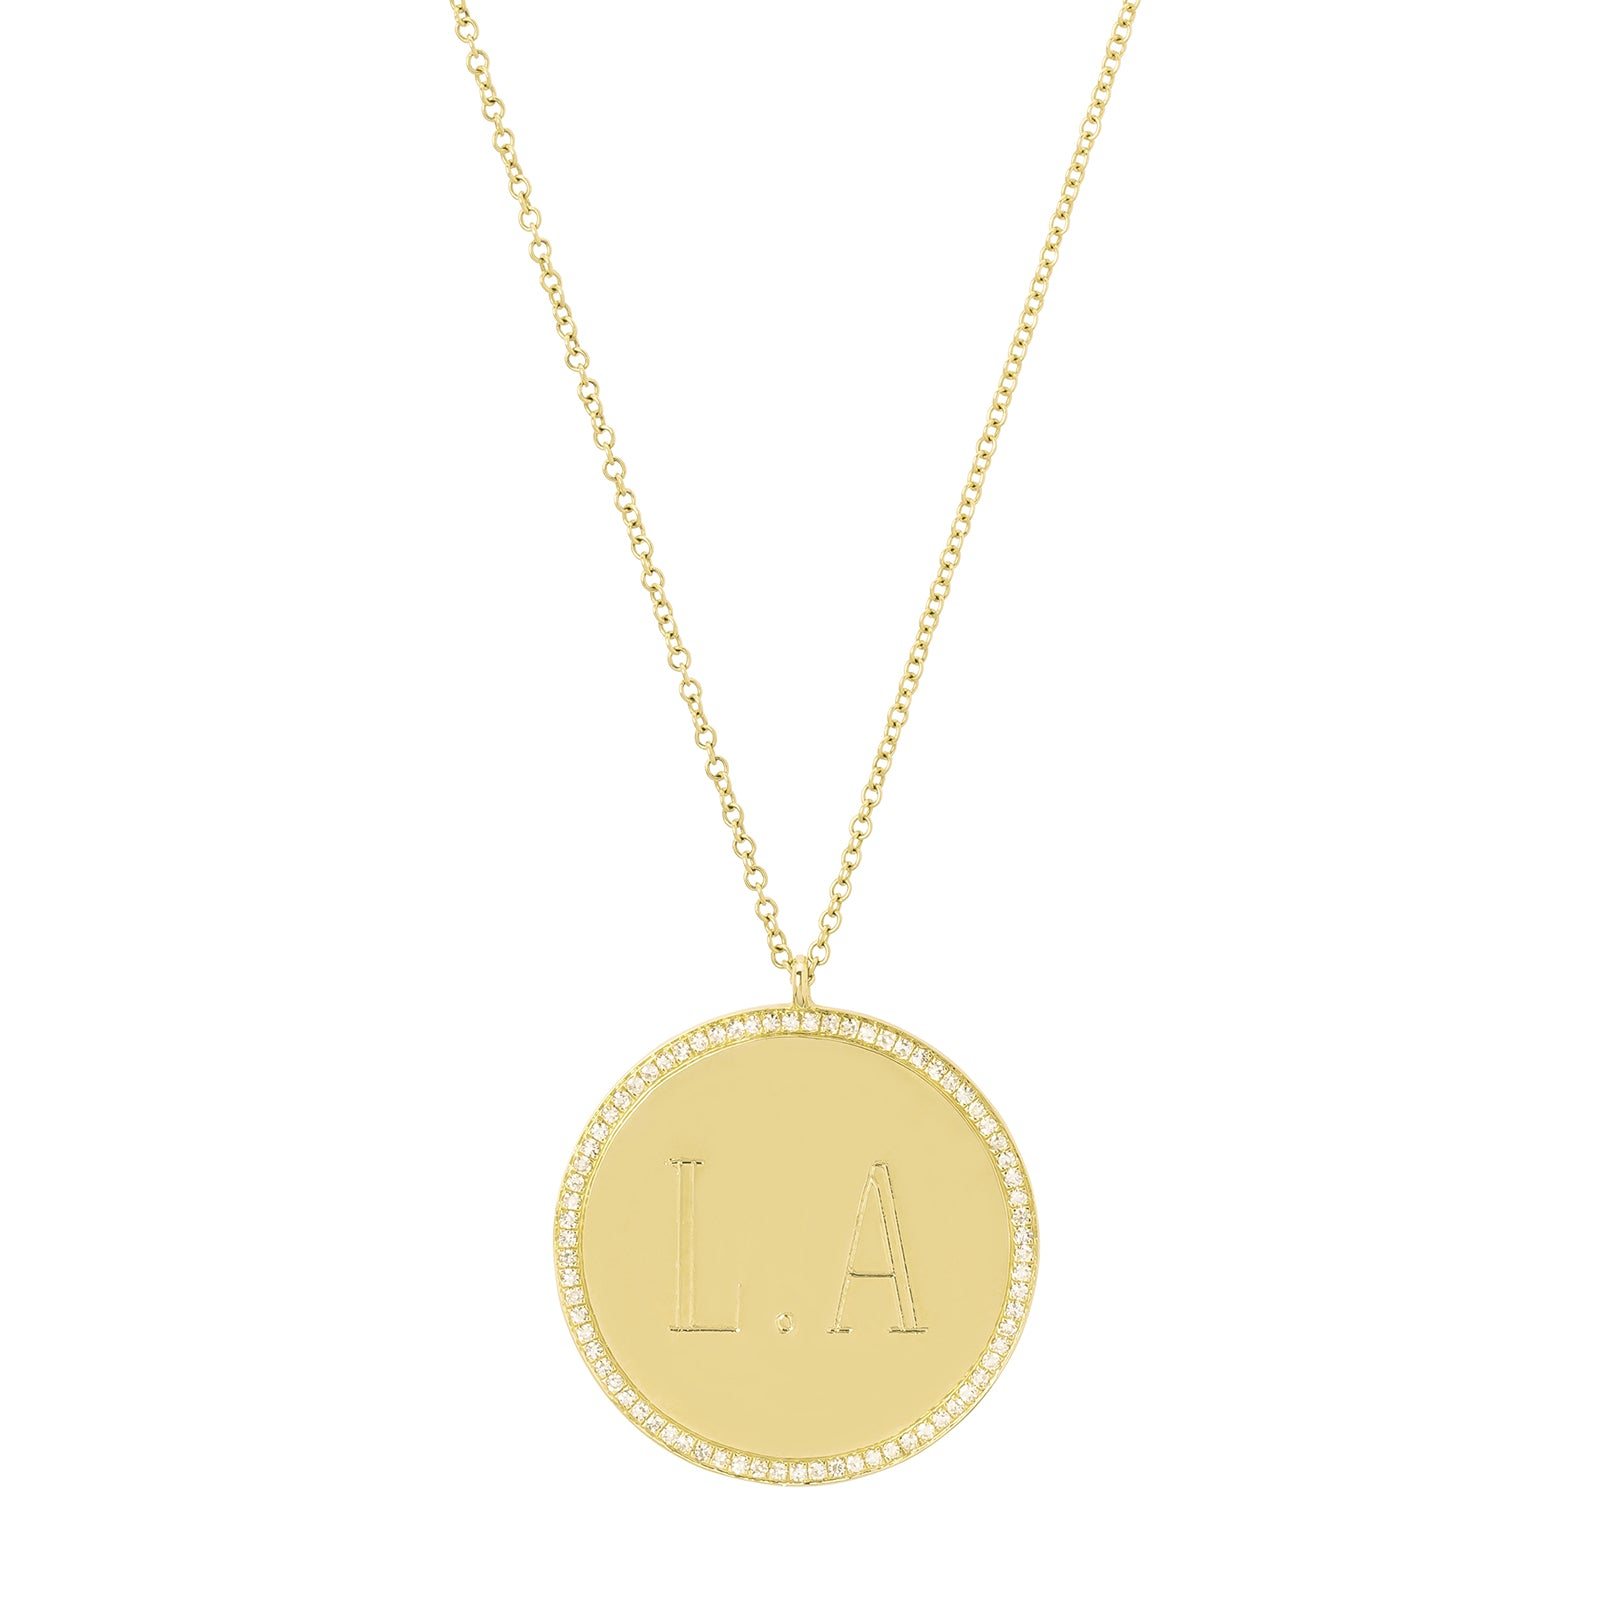 Gabriela Artigas & Company Small Disc L.A. Engraved Necklace - Yellow Gold - Necklaces - Broken English Jewelry